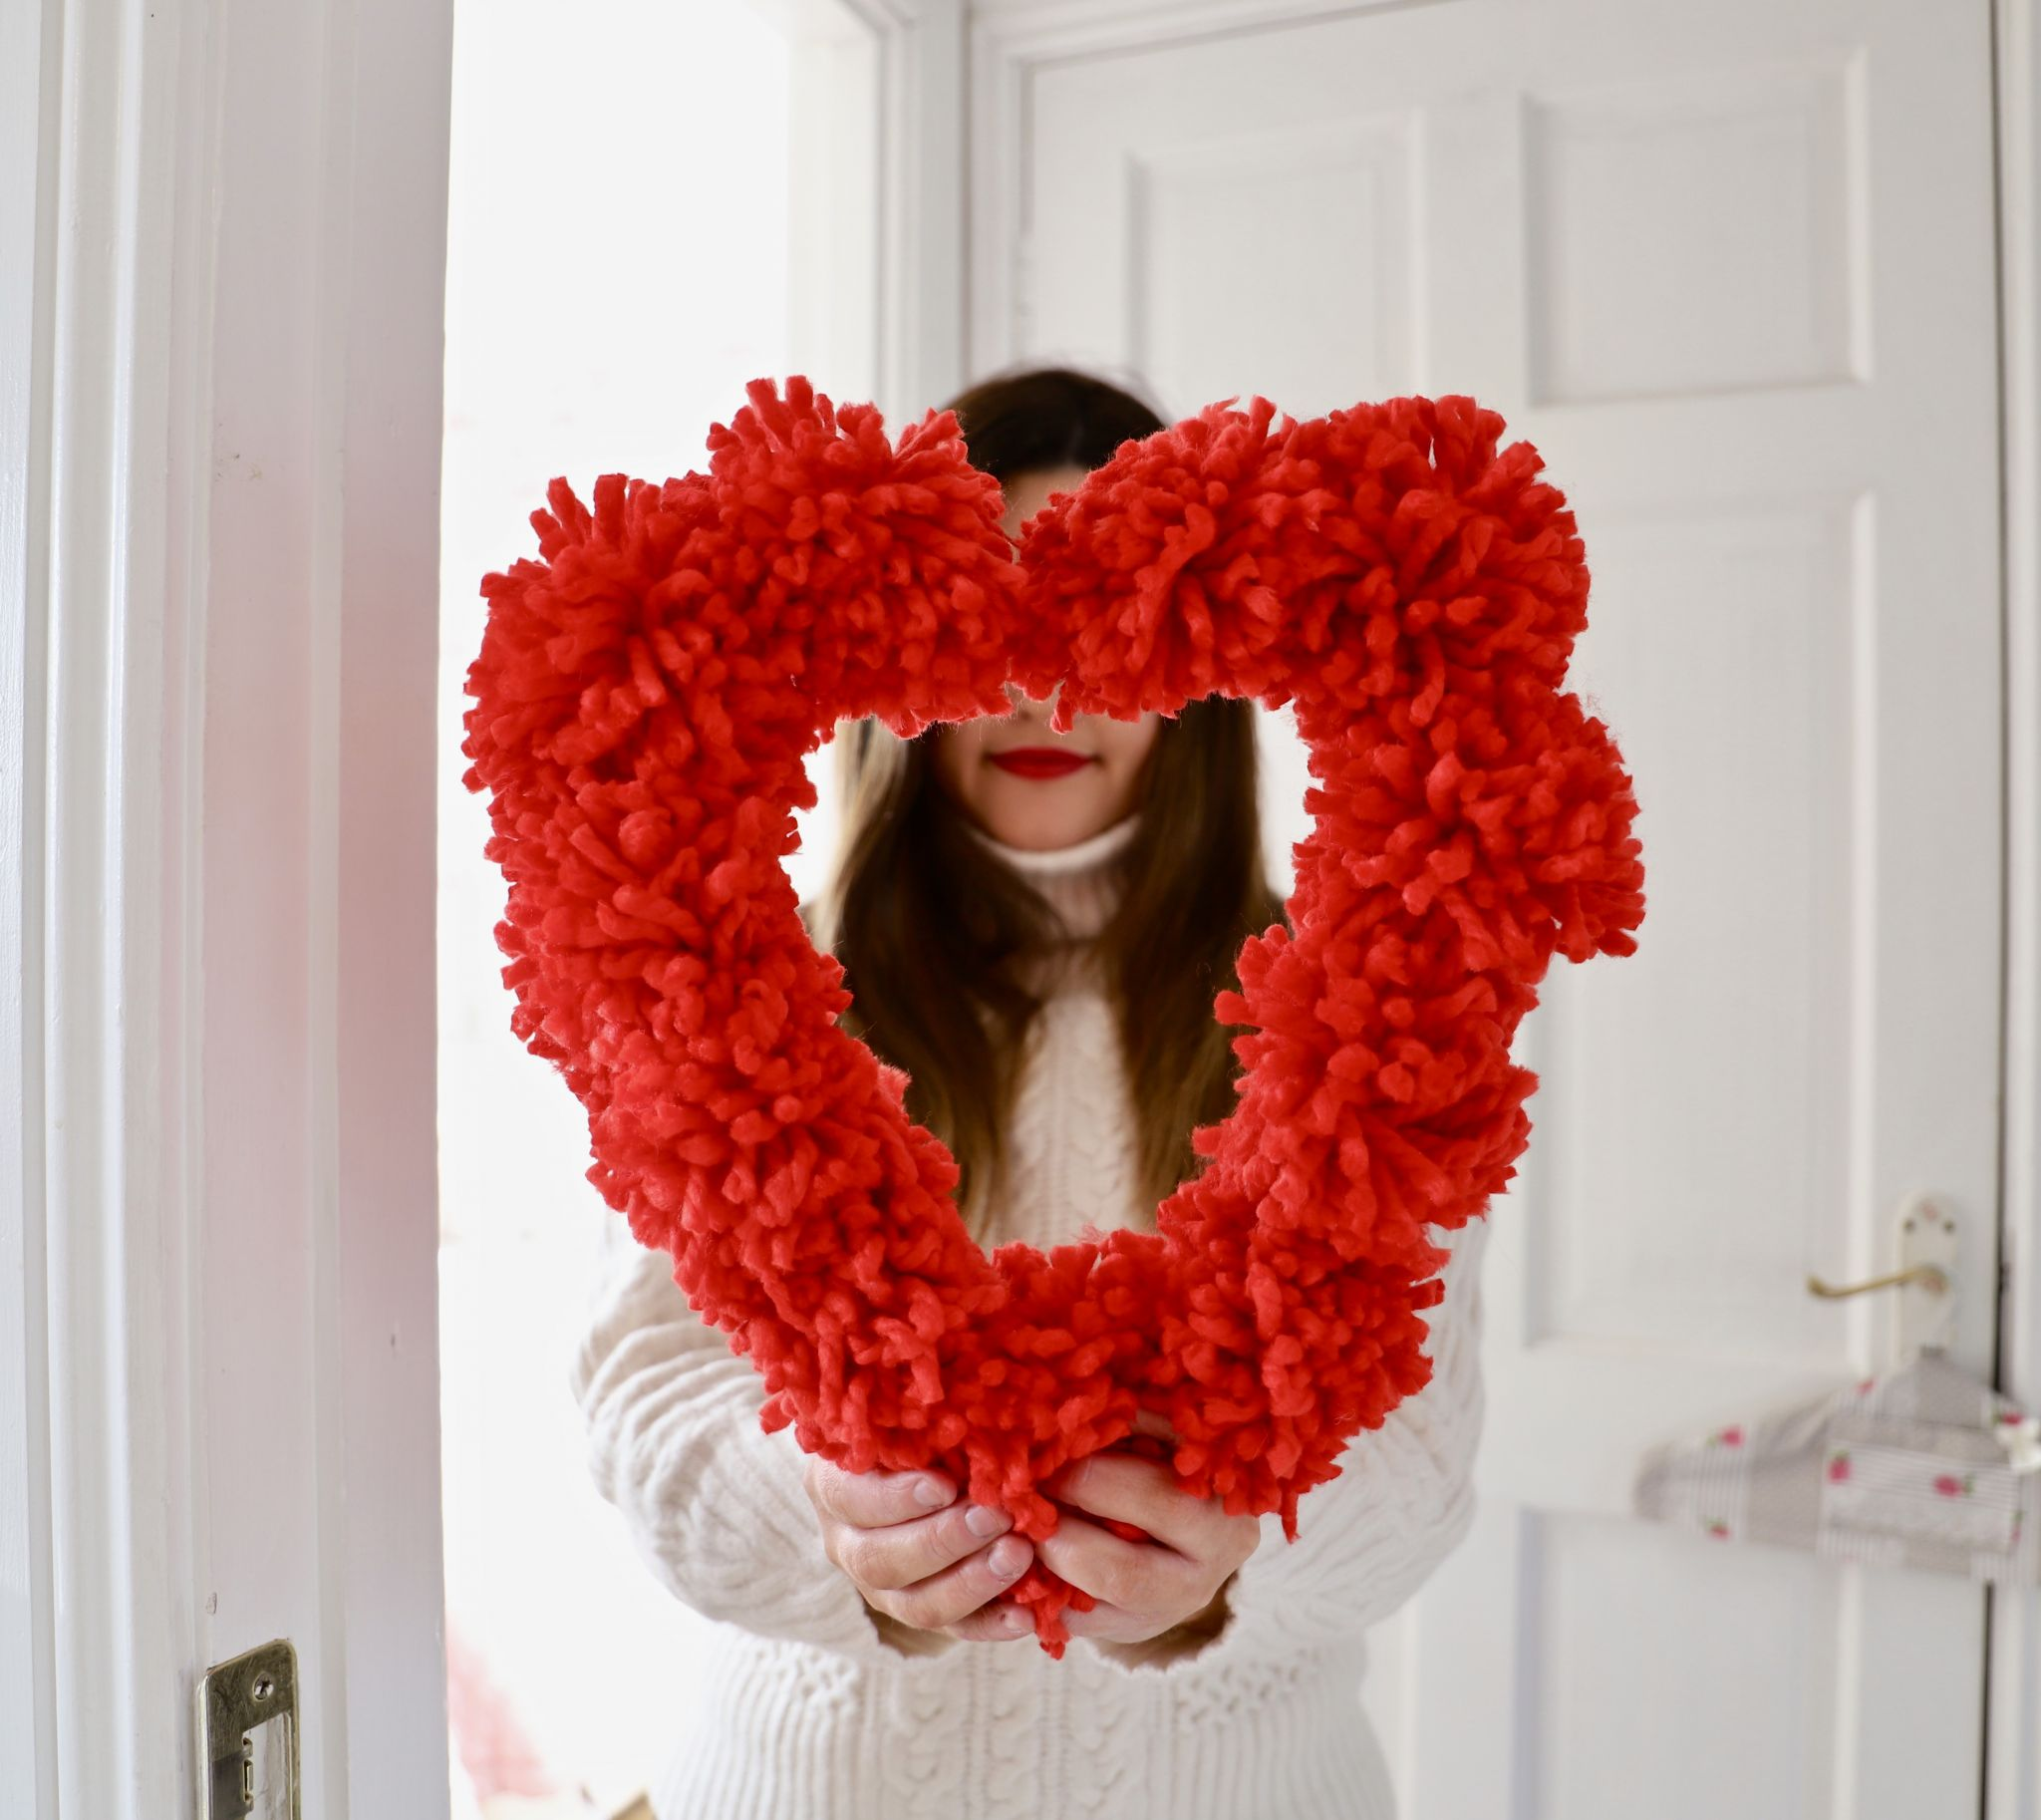 DIY Pom Pom Love Heart Wreath